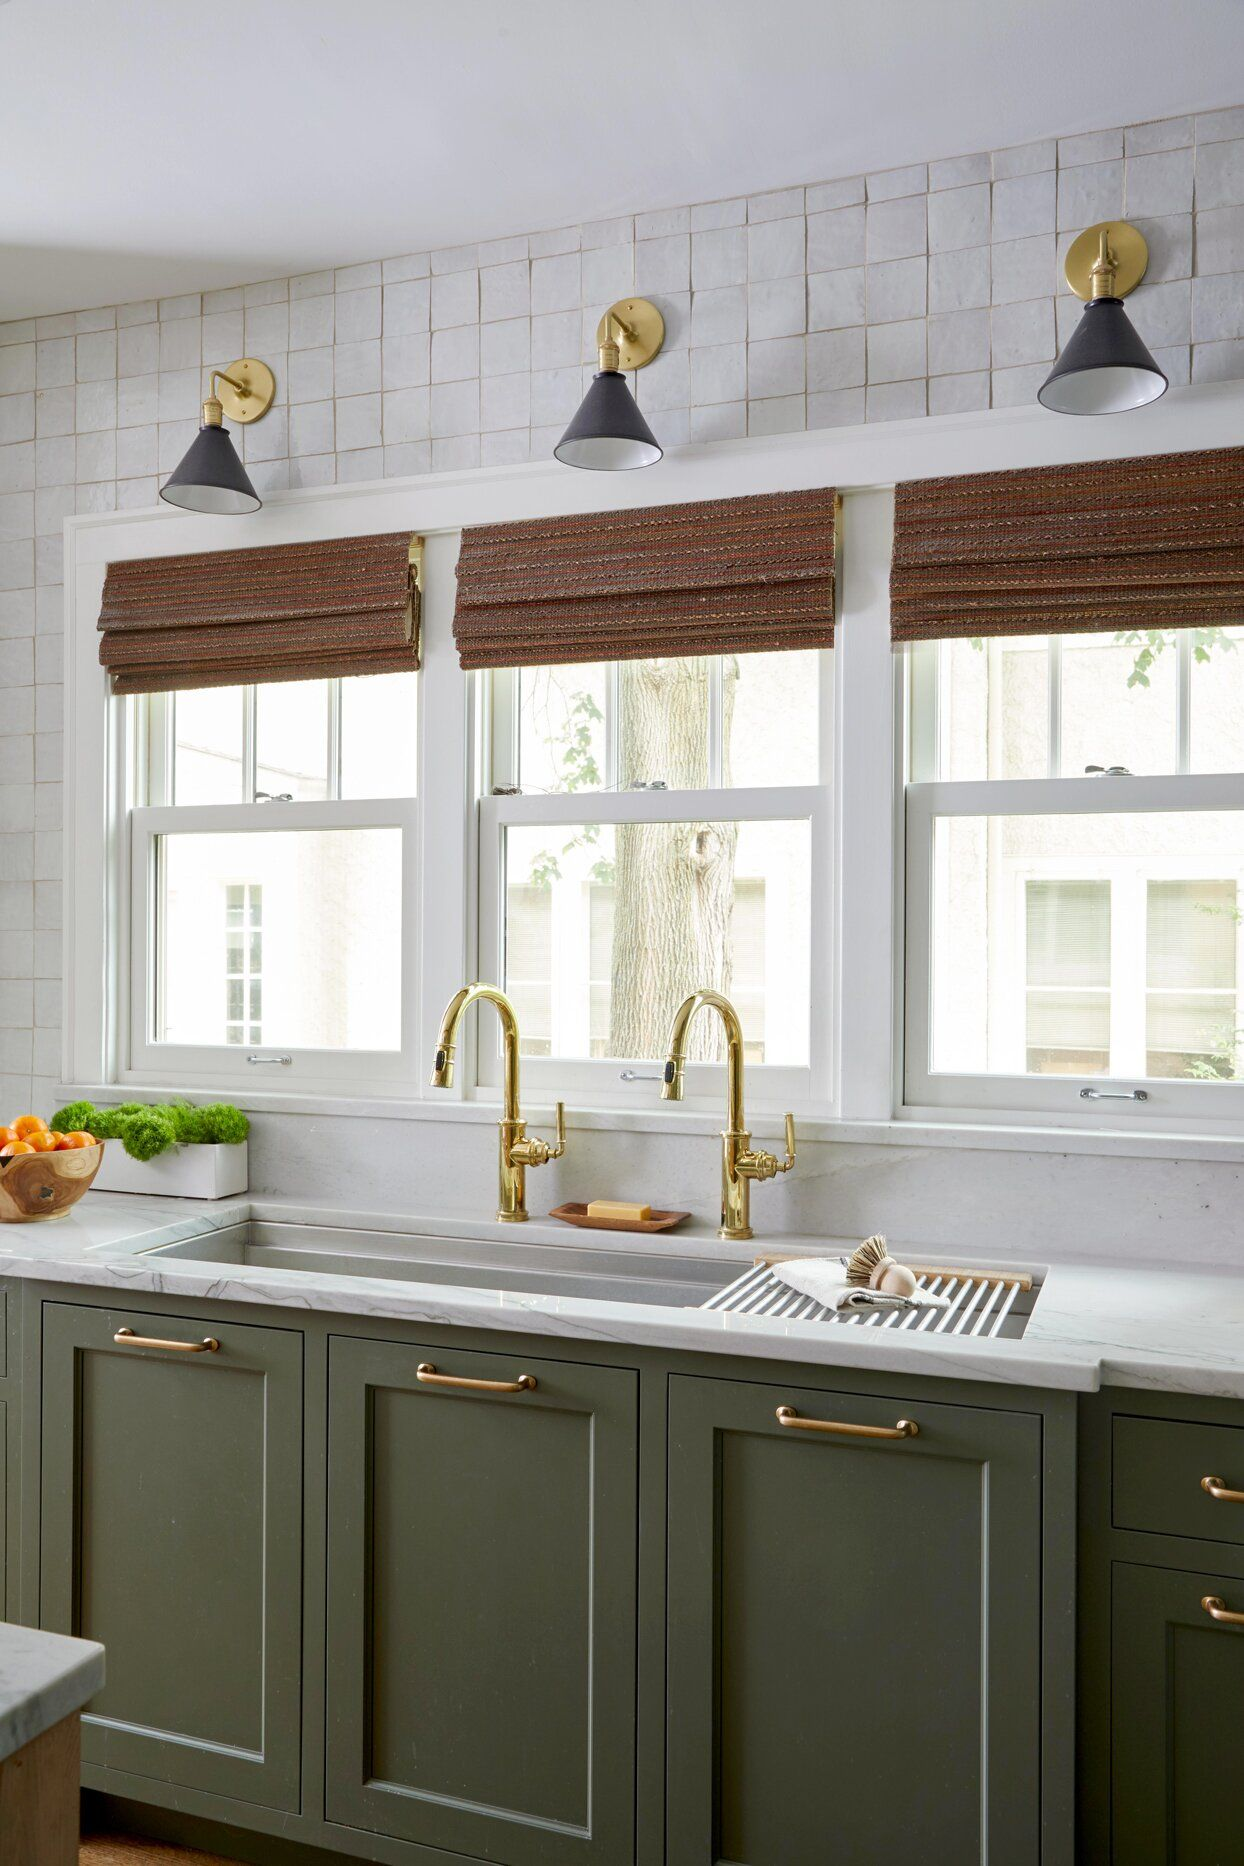 11 Best Green Paint Colors for Cabinetry, According to Experts -   17 sage green kitchen cabinets paint ideas